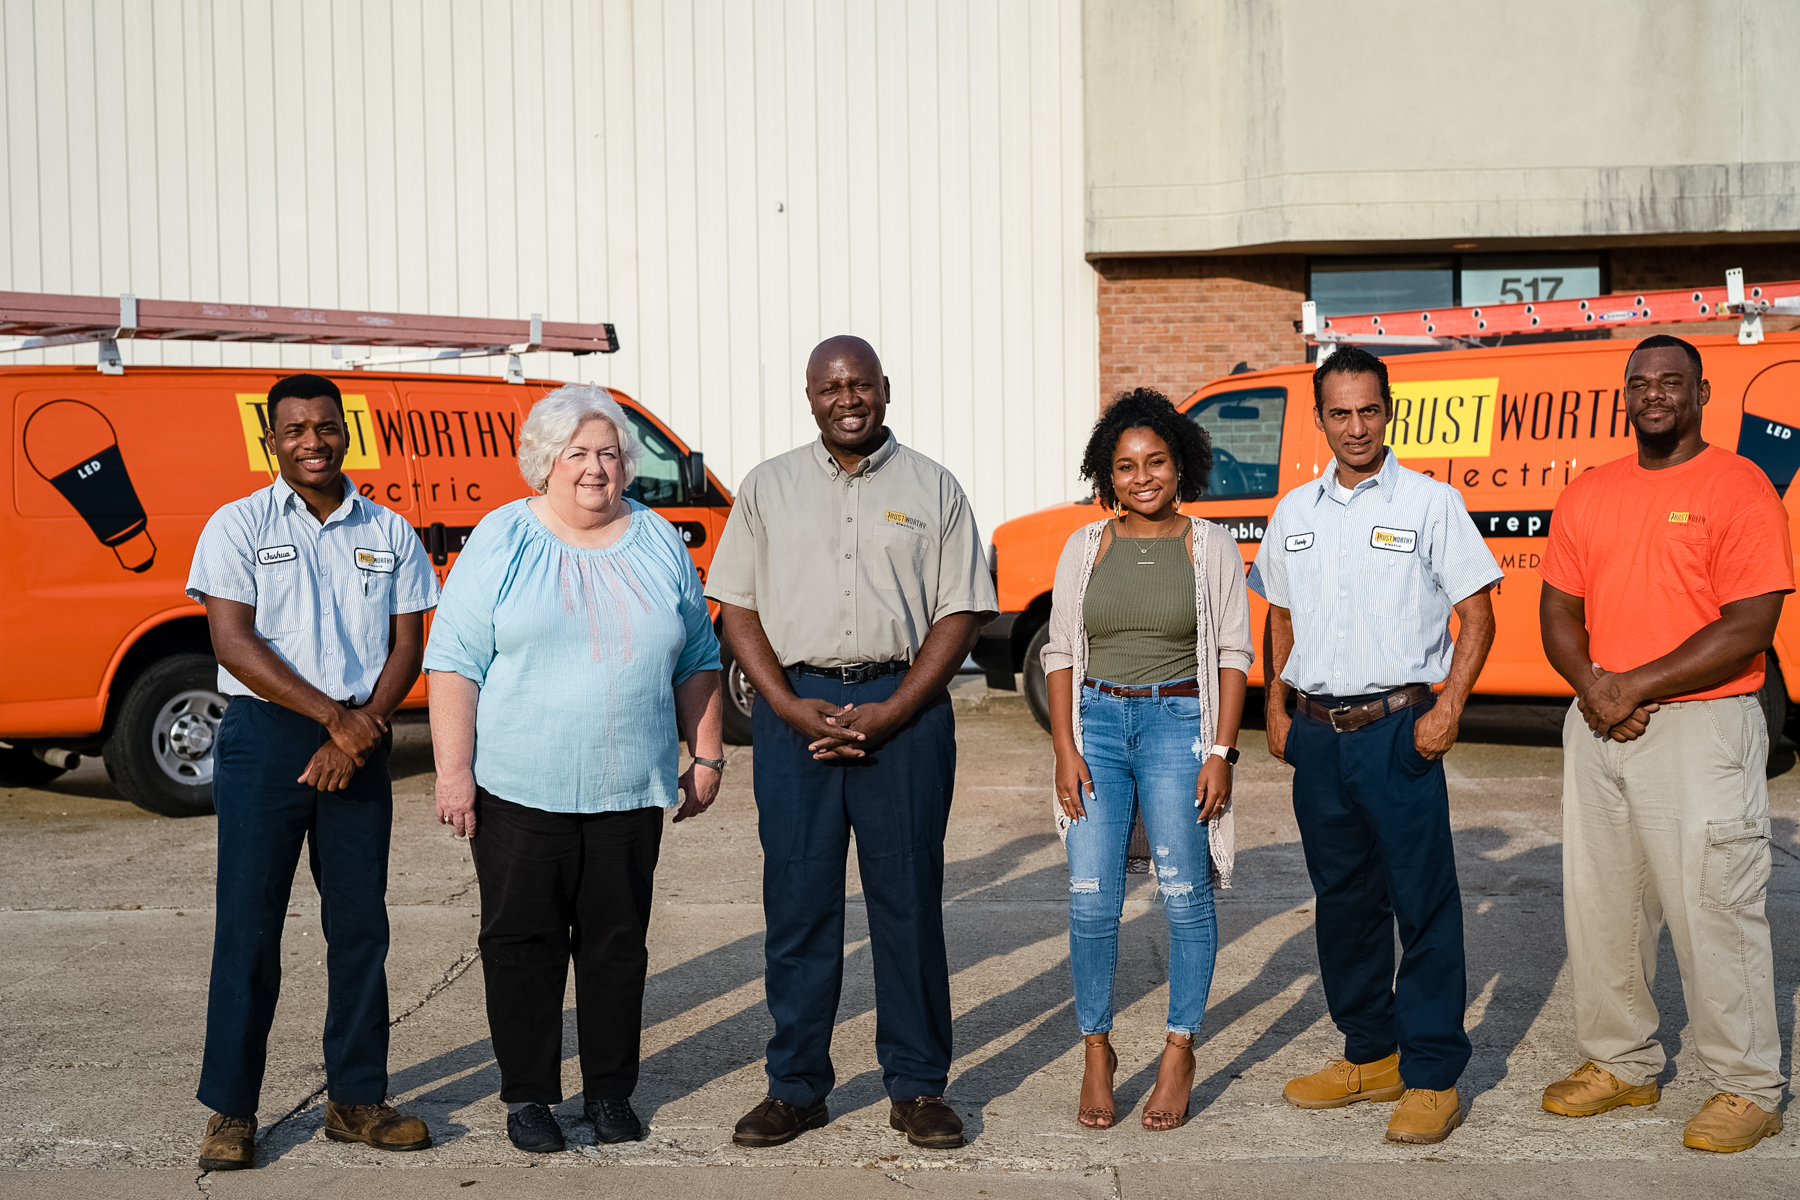 Trustworthy Electric team standing in front of company vans